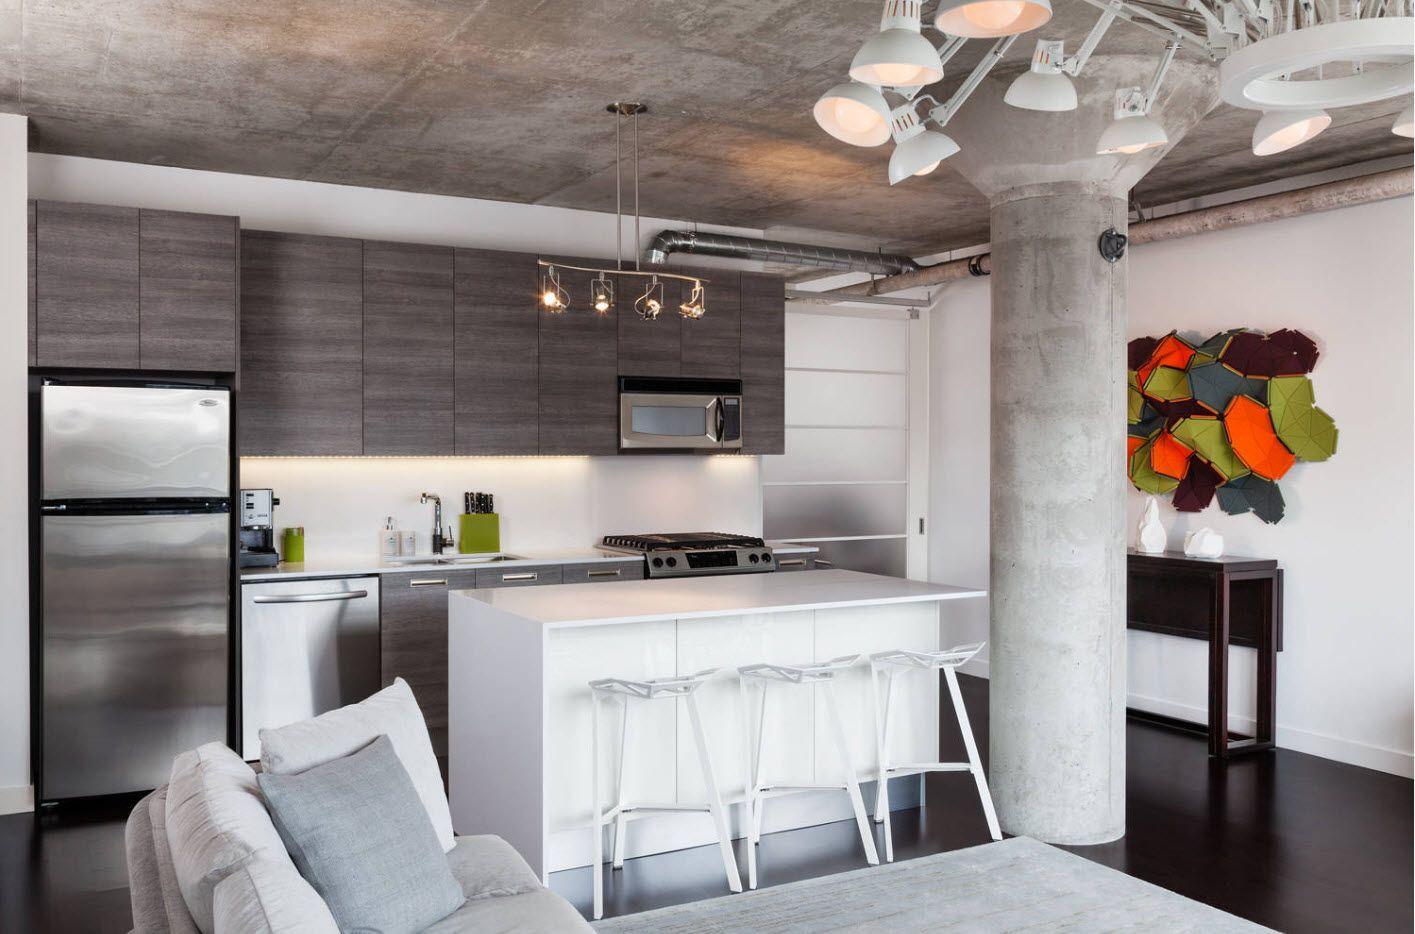 irresistible kitchen design of the kitchen looking like home theater